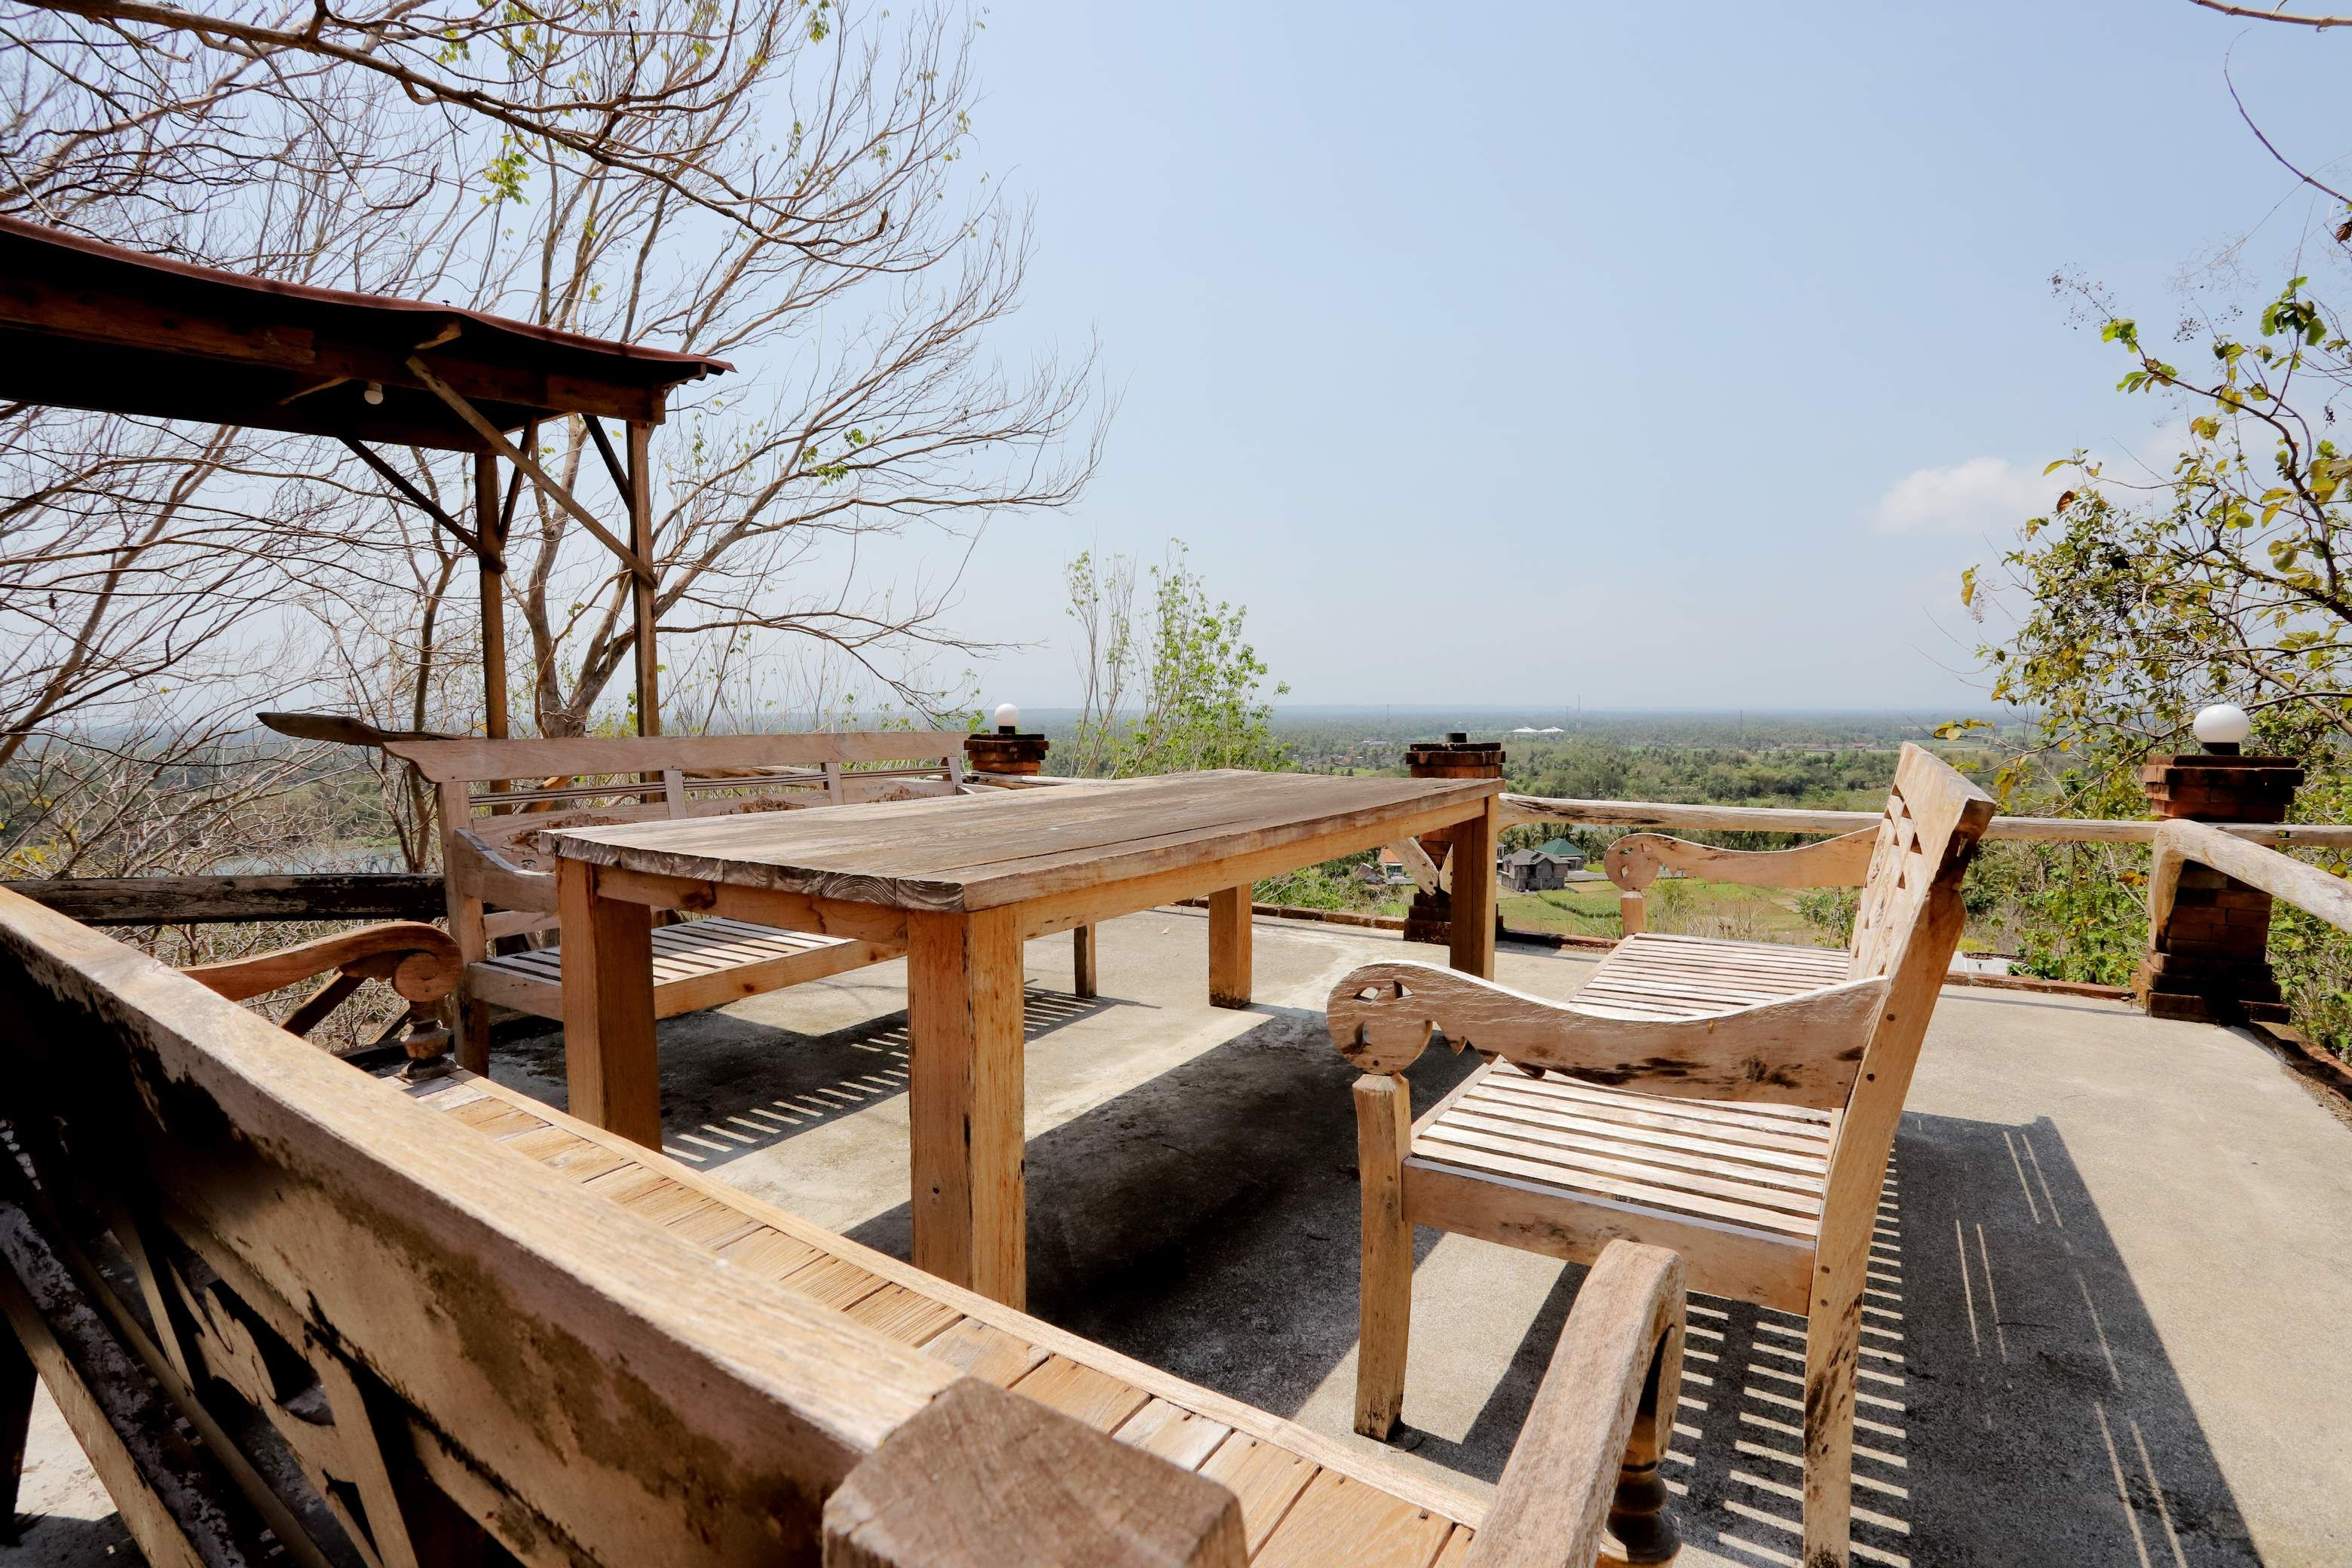 Watu Lumbung Culture Resort, Bantul